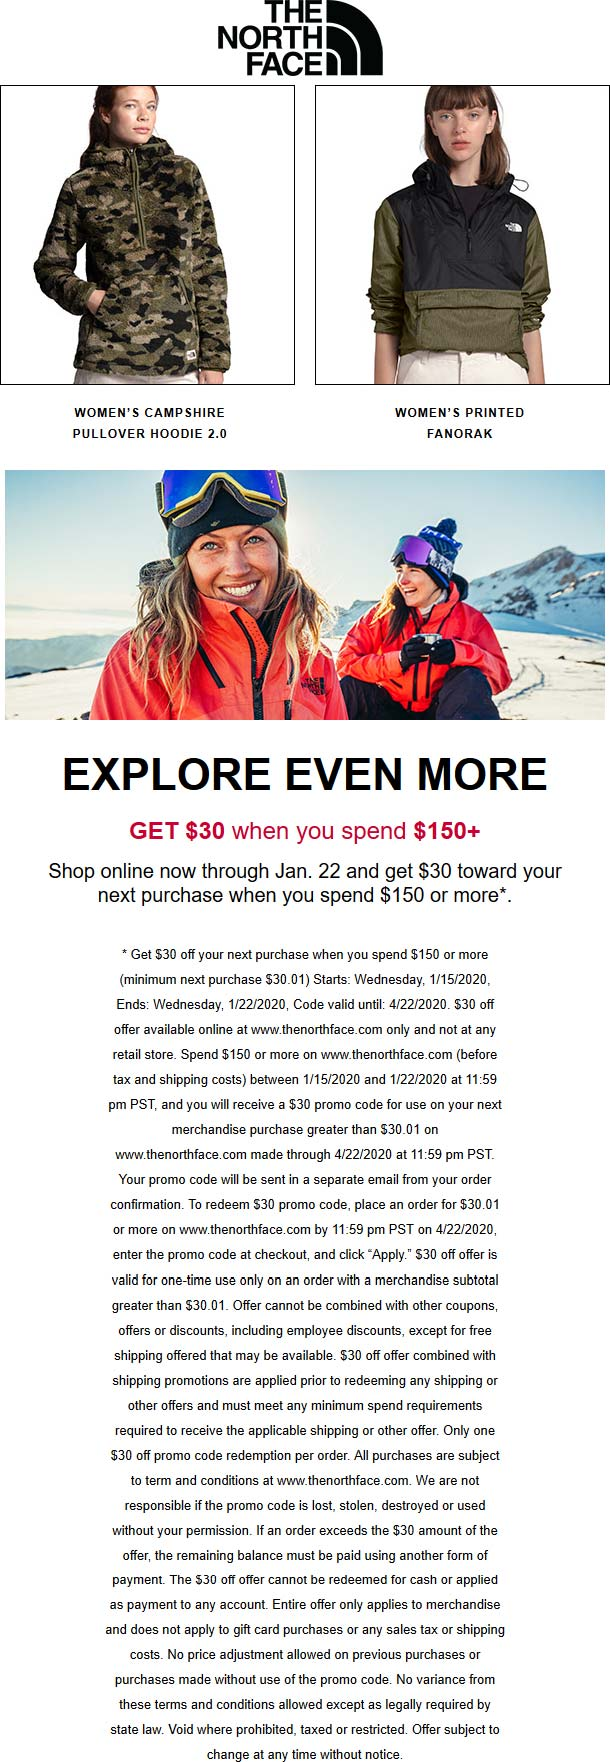 The North Face coupons & promo code for [April 2020]